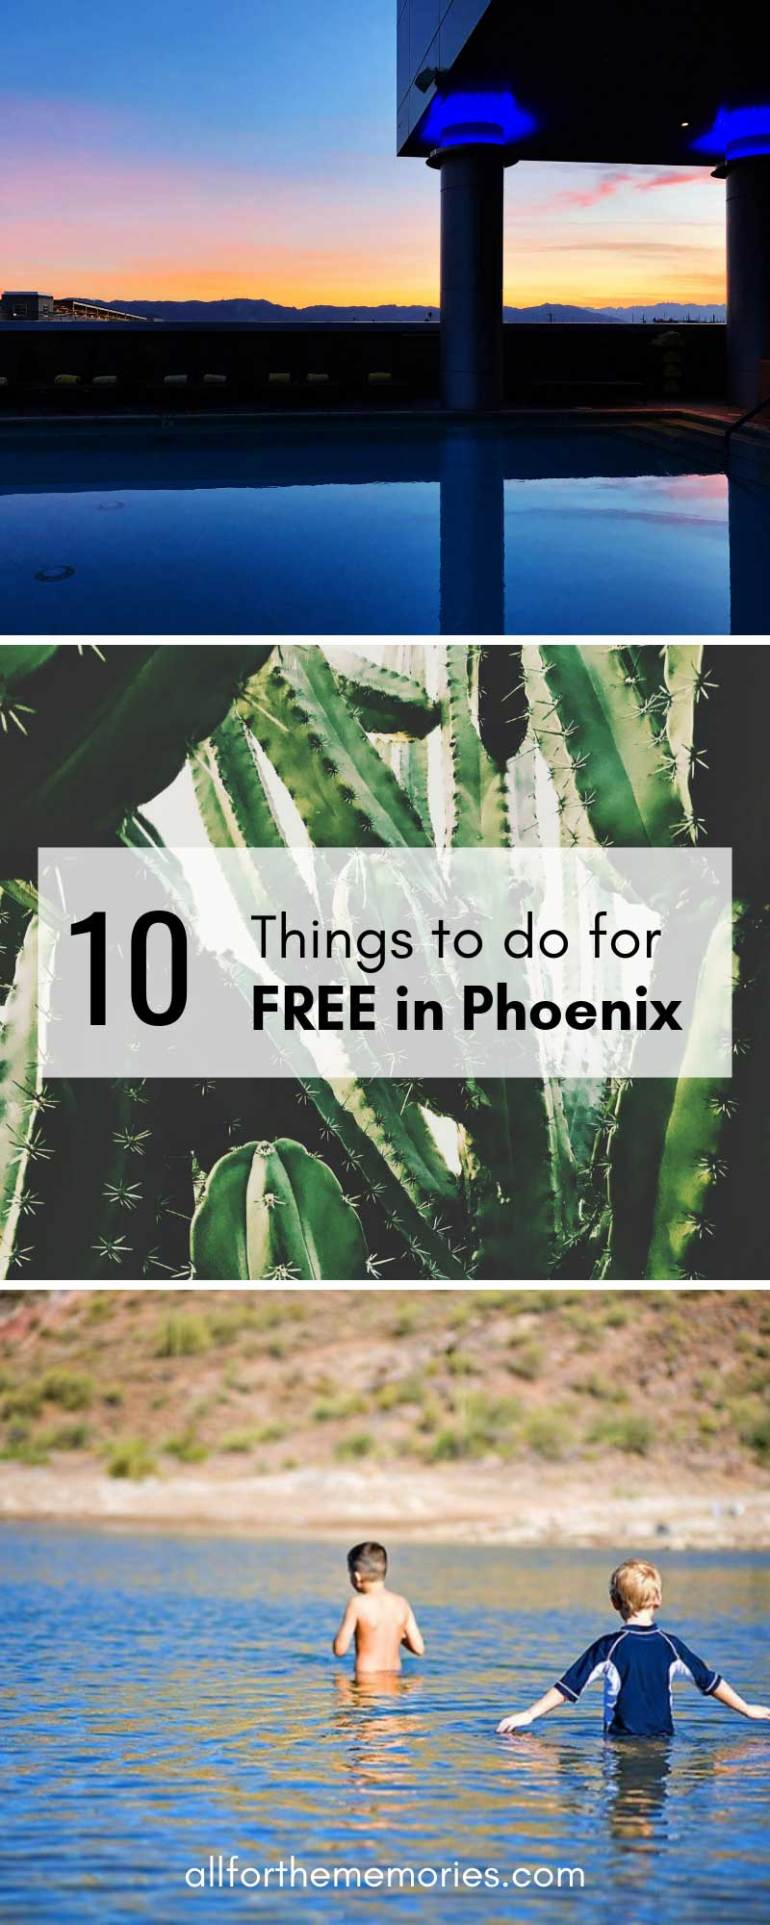 10 things to do for FREE in Phoenix, Arizona